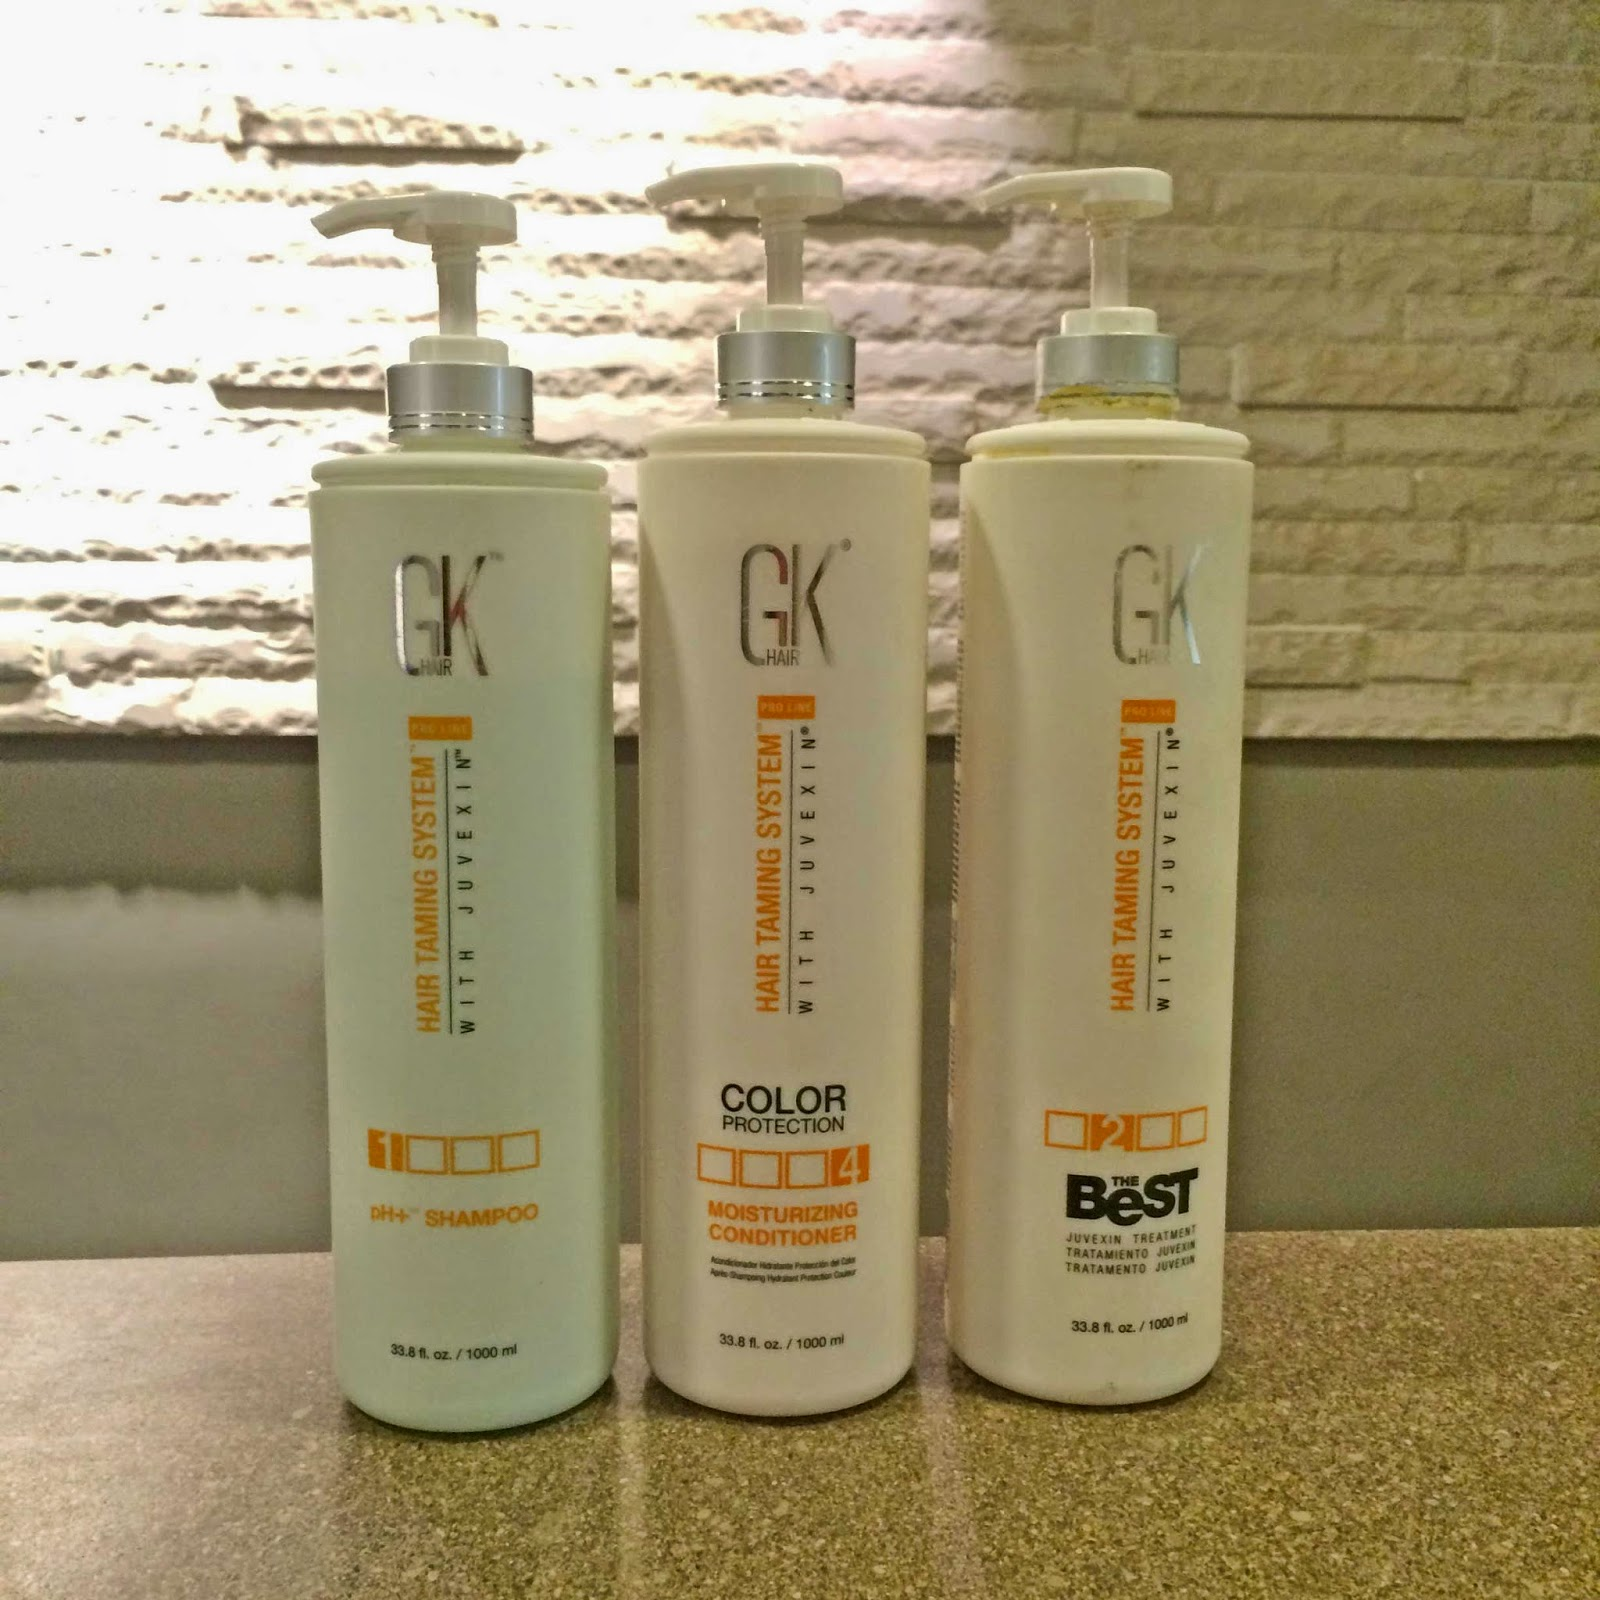 GK keratin treatment hair products